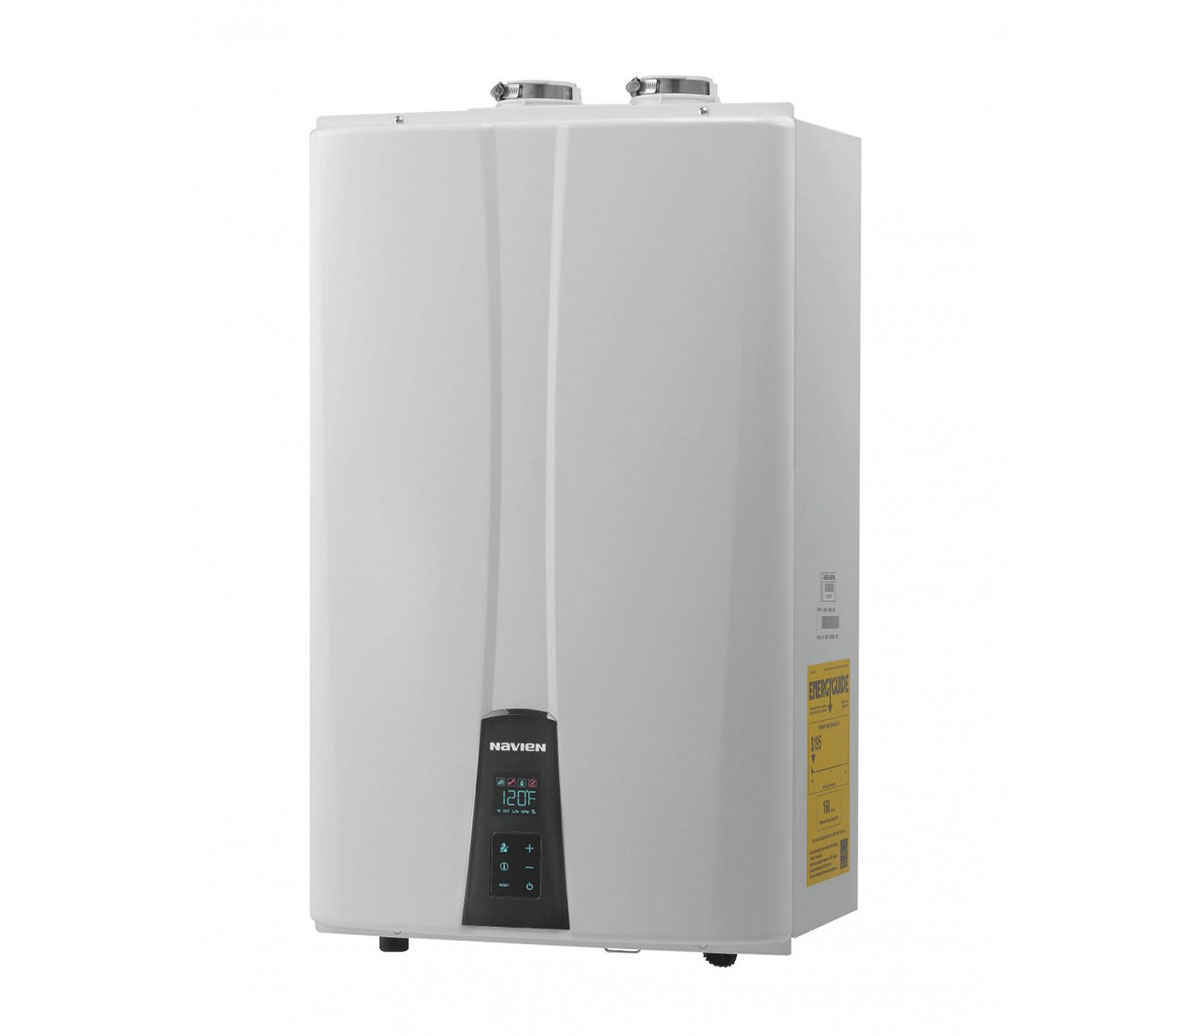 seattle wa Navien tankless water heater